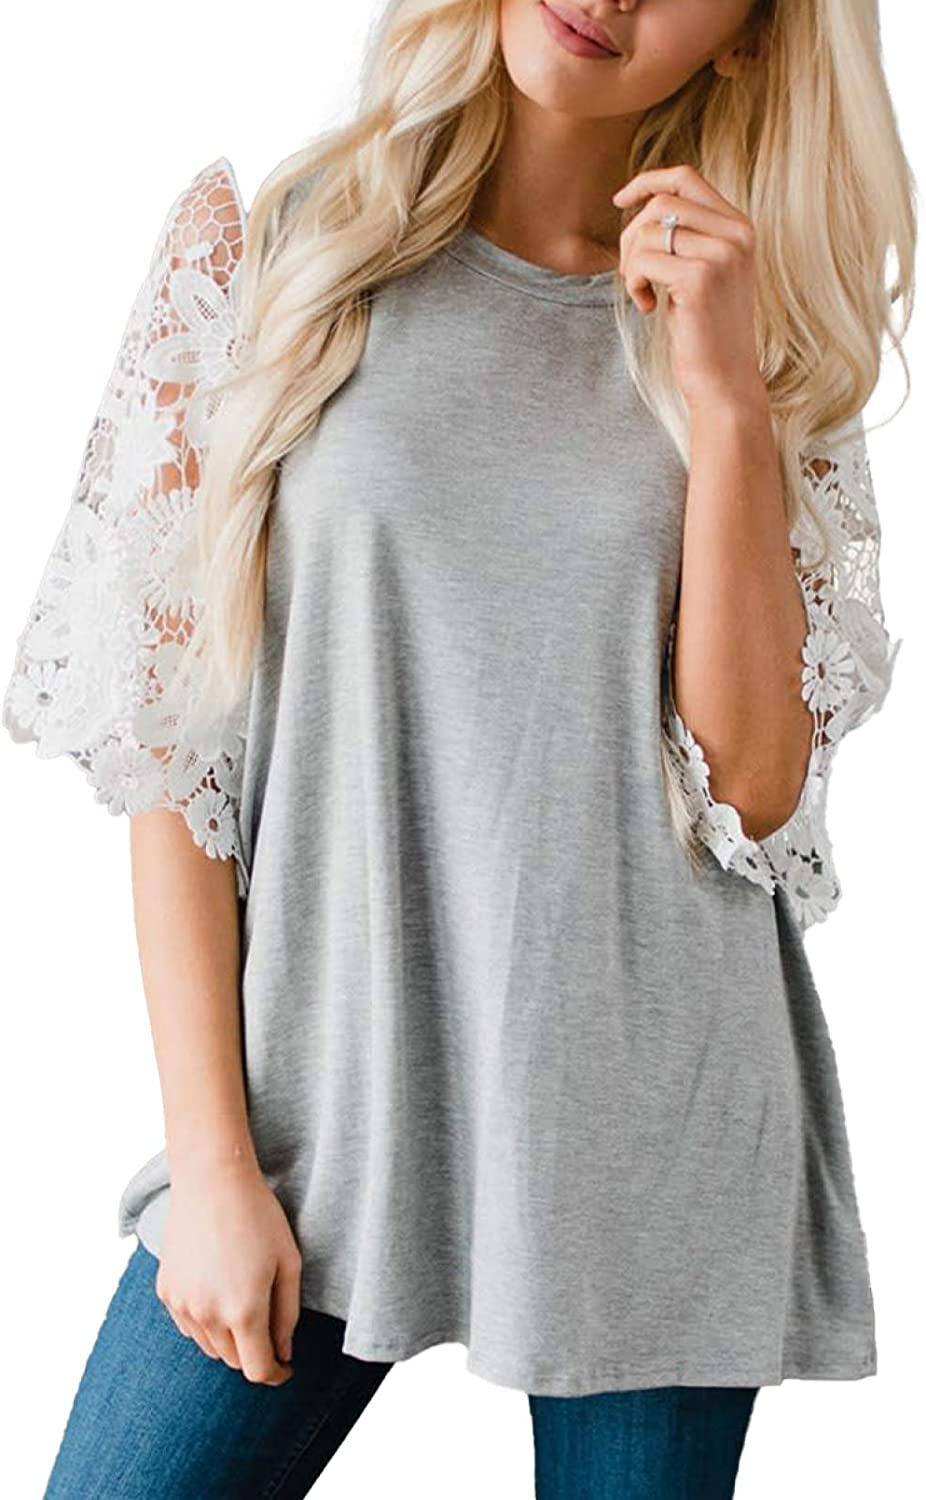 Ecrocoo Women's Casual Summer Tops Crew Neck Tees Lace Loose Short Sleeve Blouse T-Shirt Solid Color Flattering Shirt